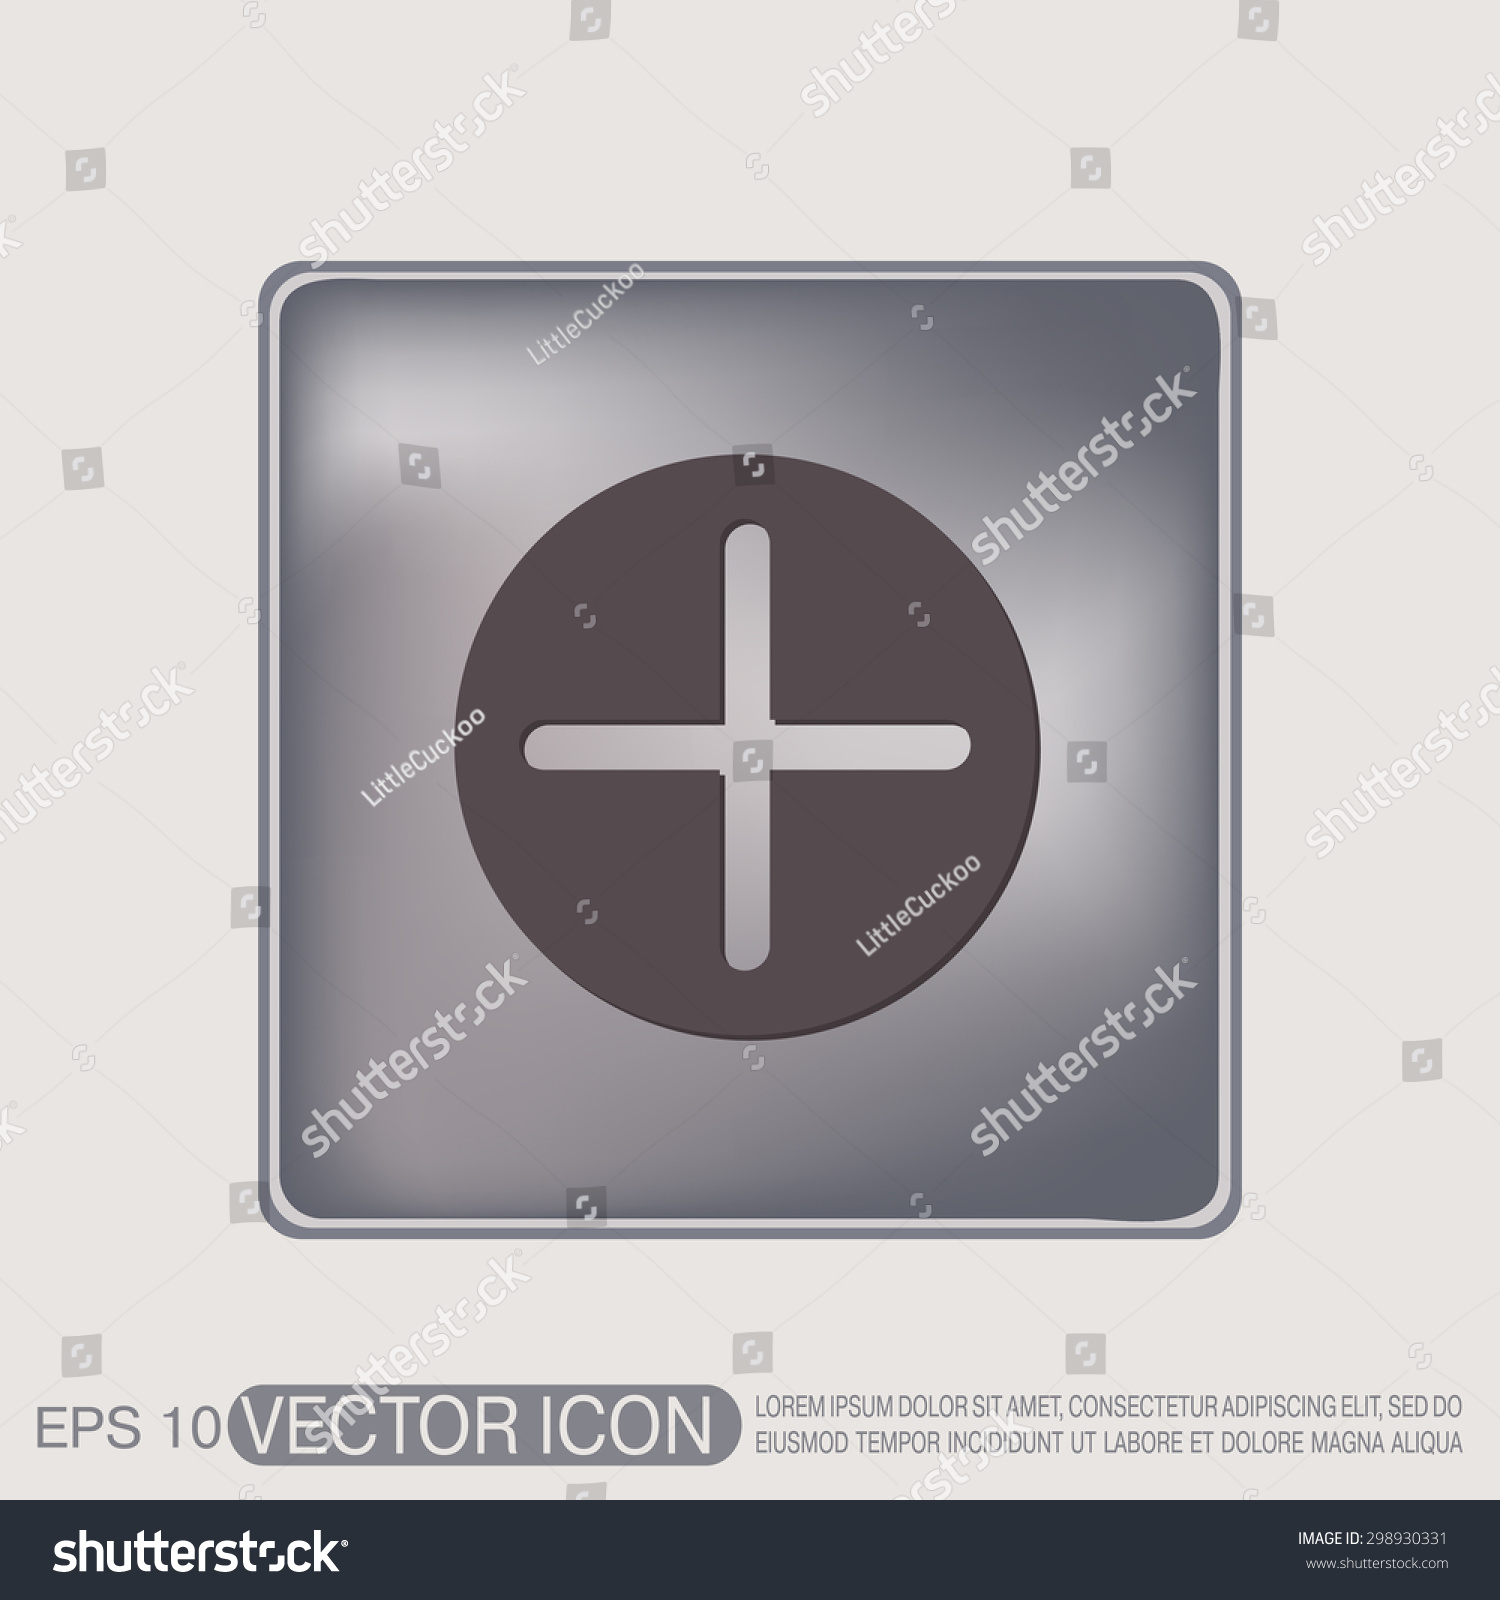 Plus sign icon positive symbol stock vector 298930331 shutterstock plus sign icon positive symbol biocorpaavc Choice Image